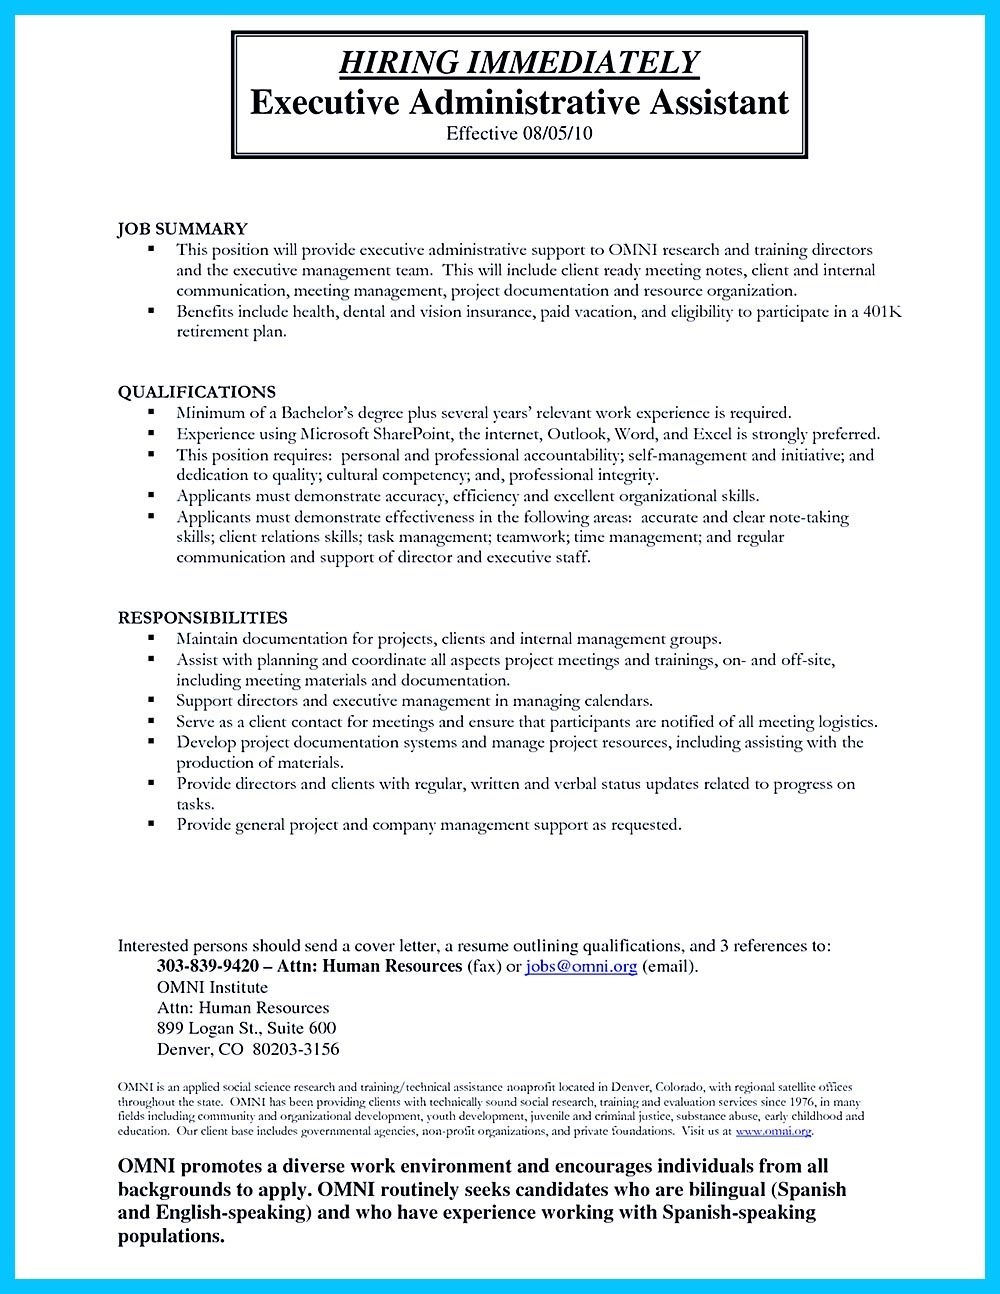 Administrative Assistant Resume Sample In Writing Entry Level Administrative Assistant Resume You Need To .